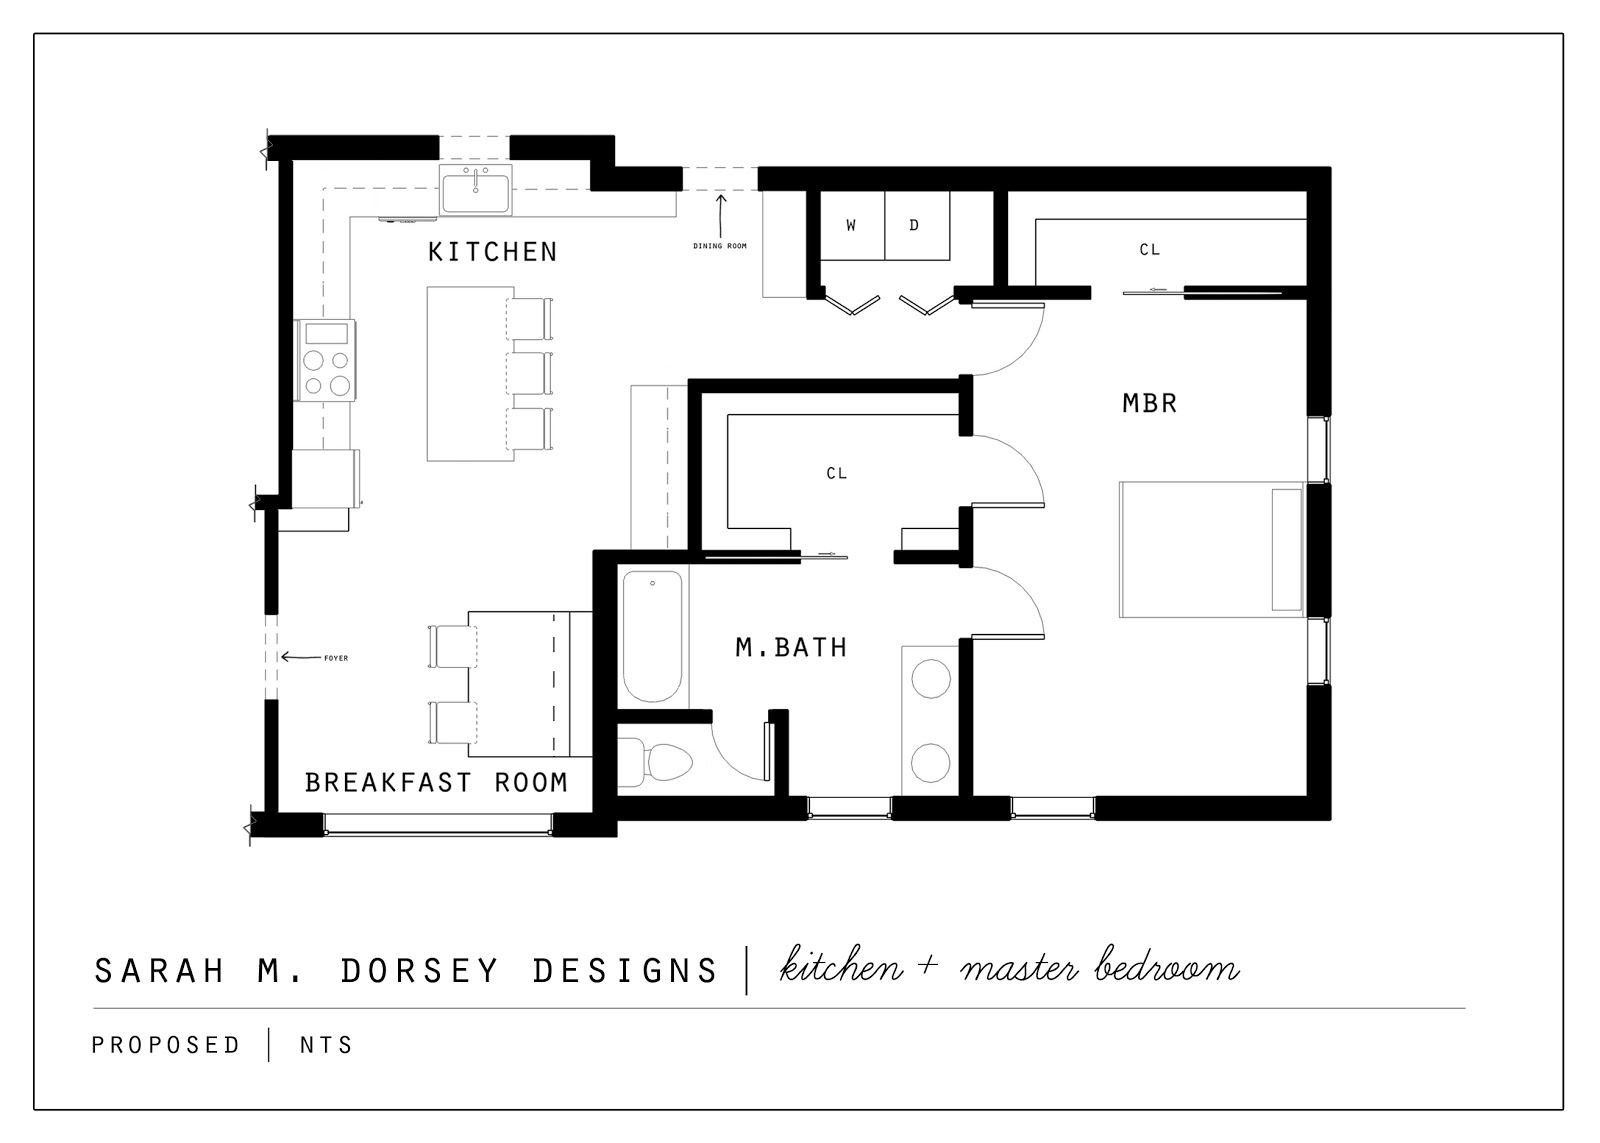 Master bedroom drawing - Proposed Kitchen And Master Suite Remodel